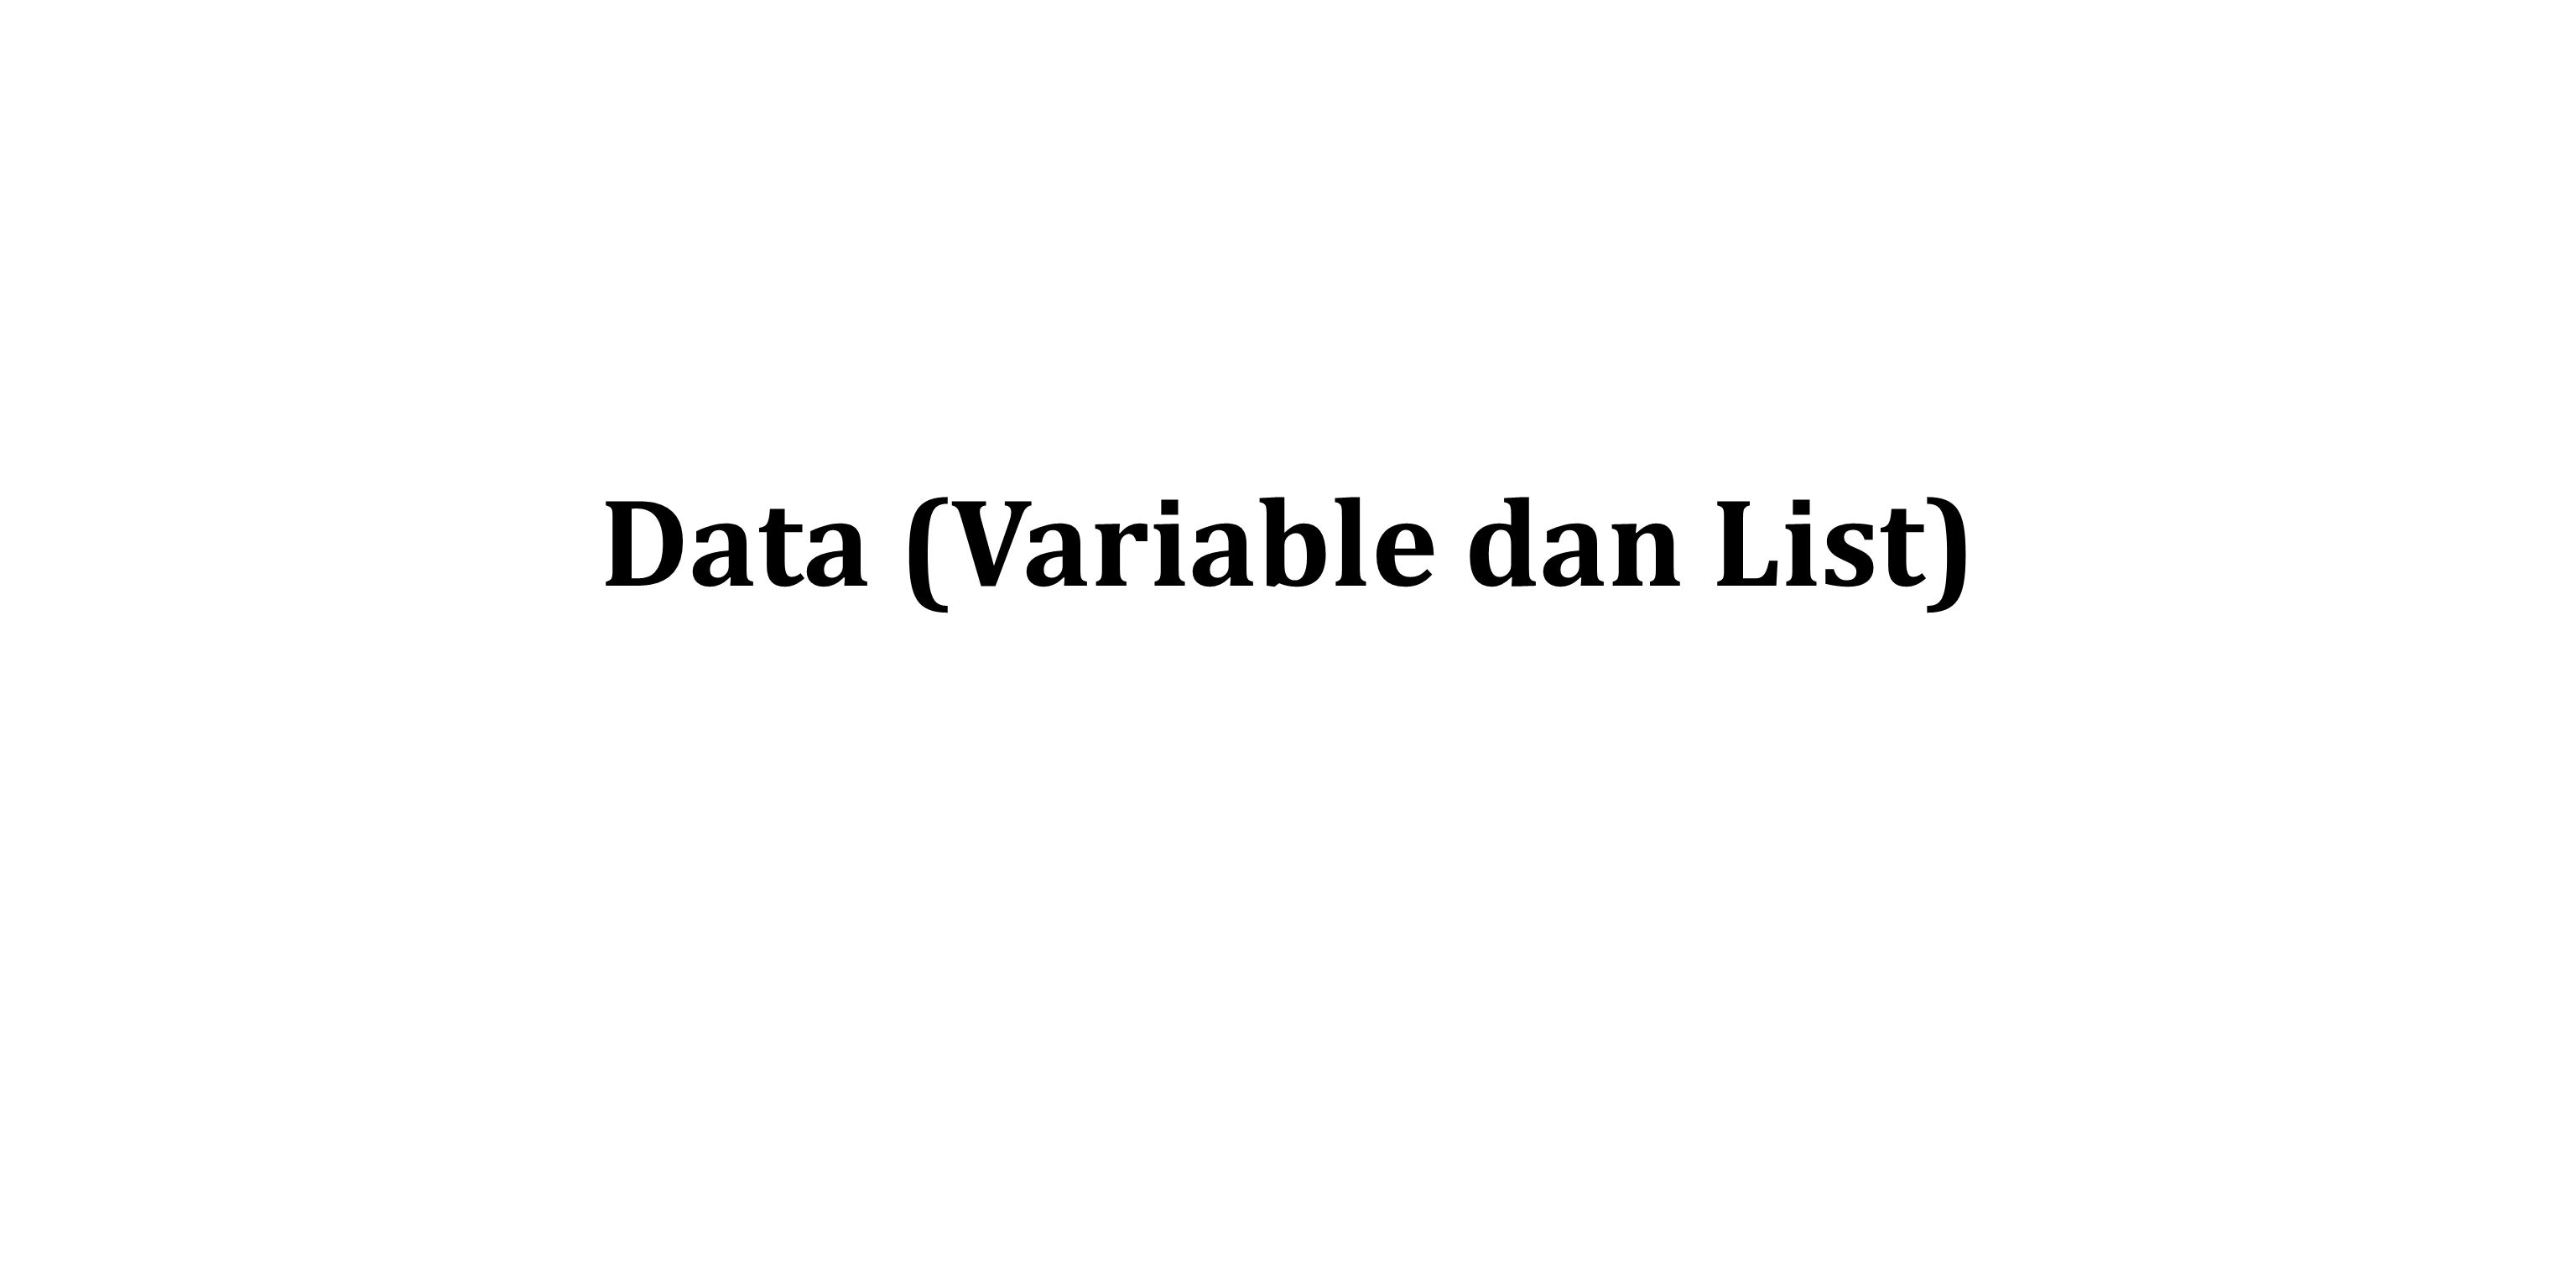 Data (Variable dan List)